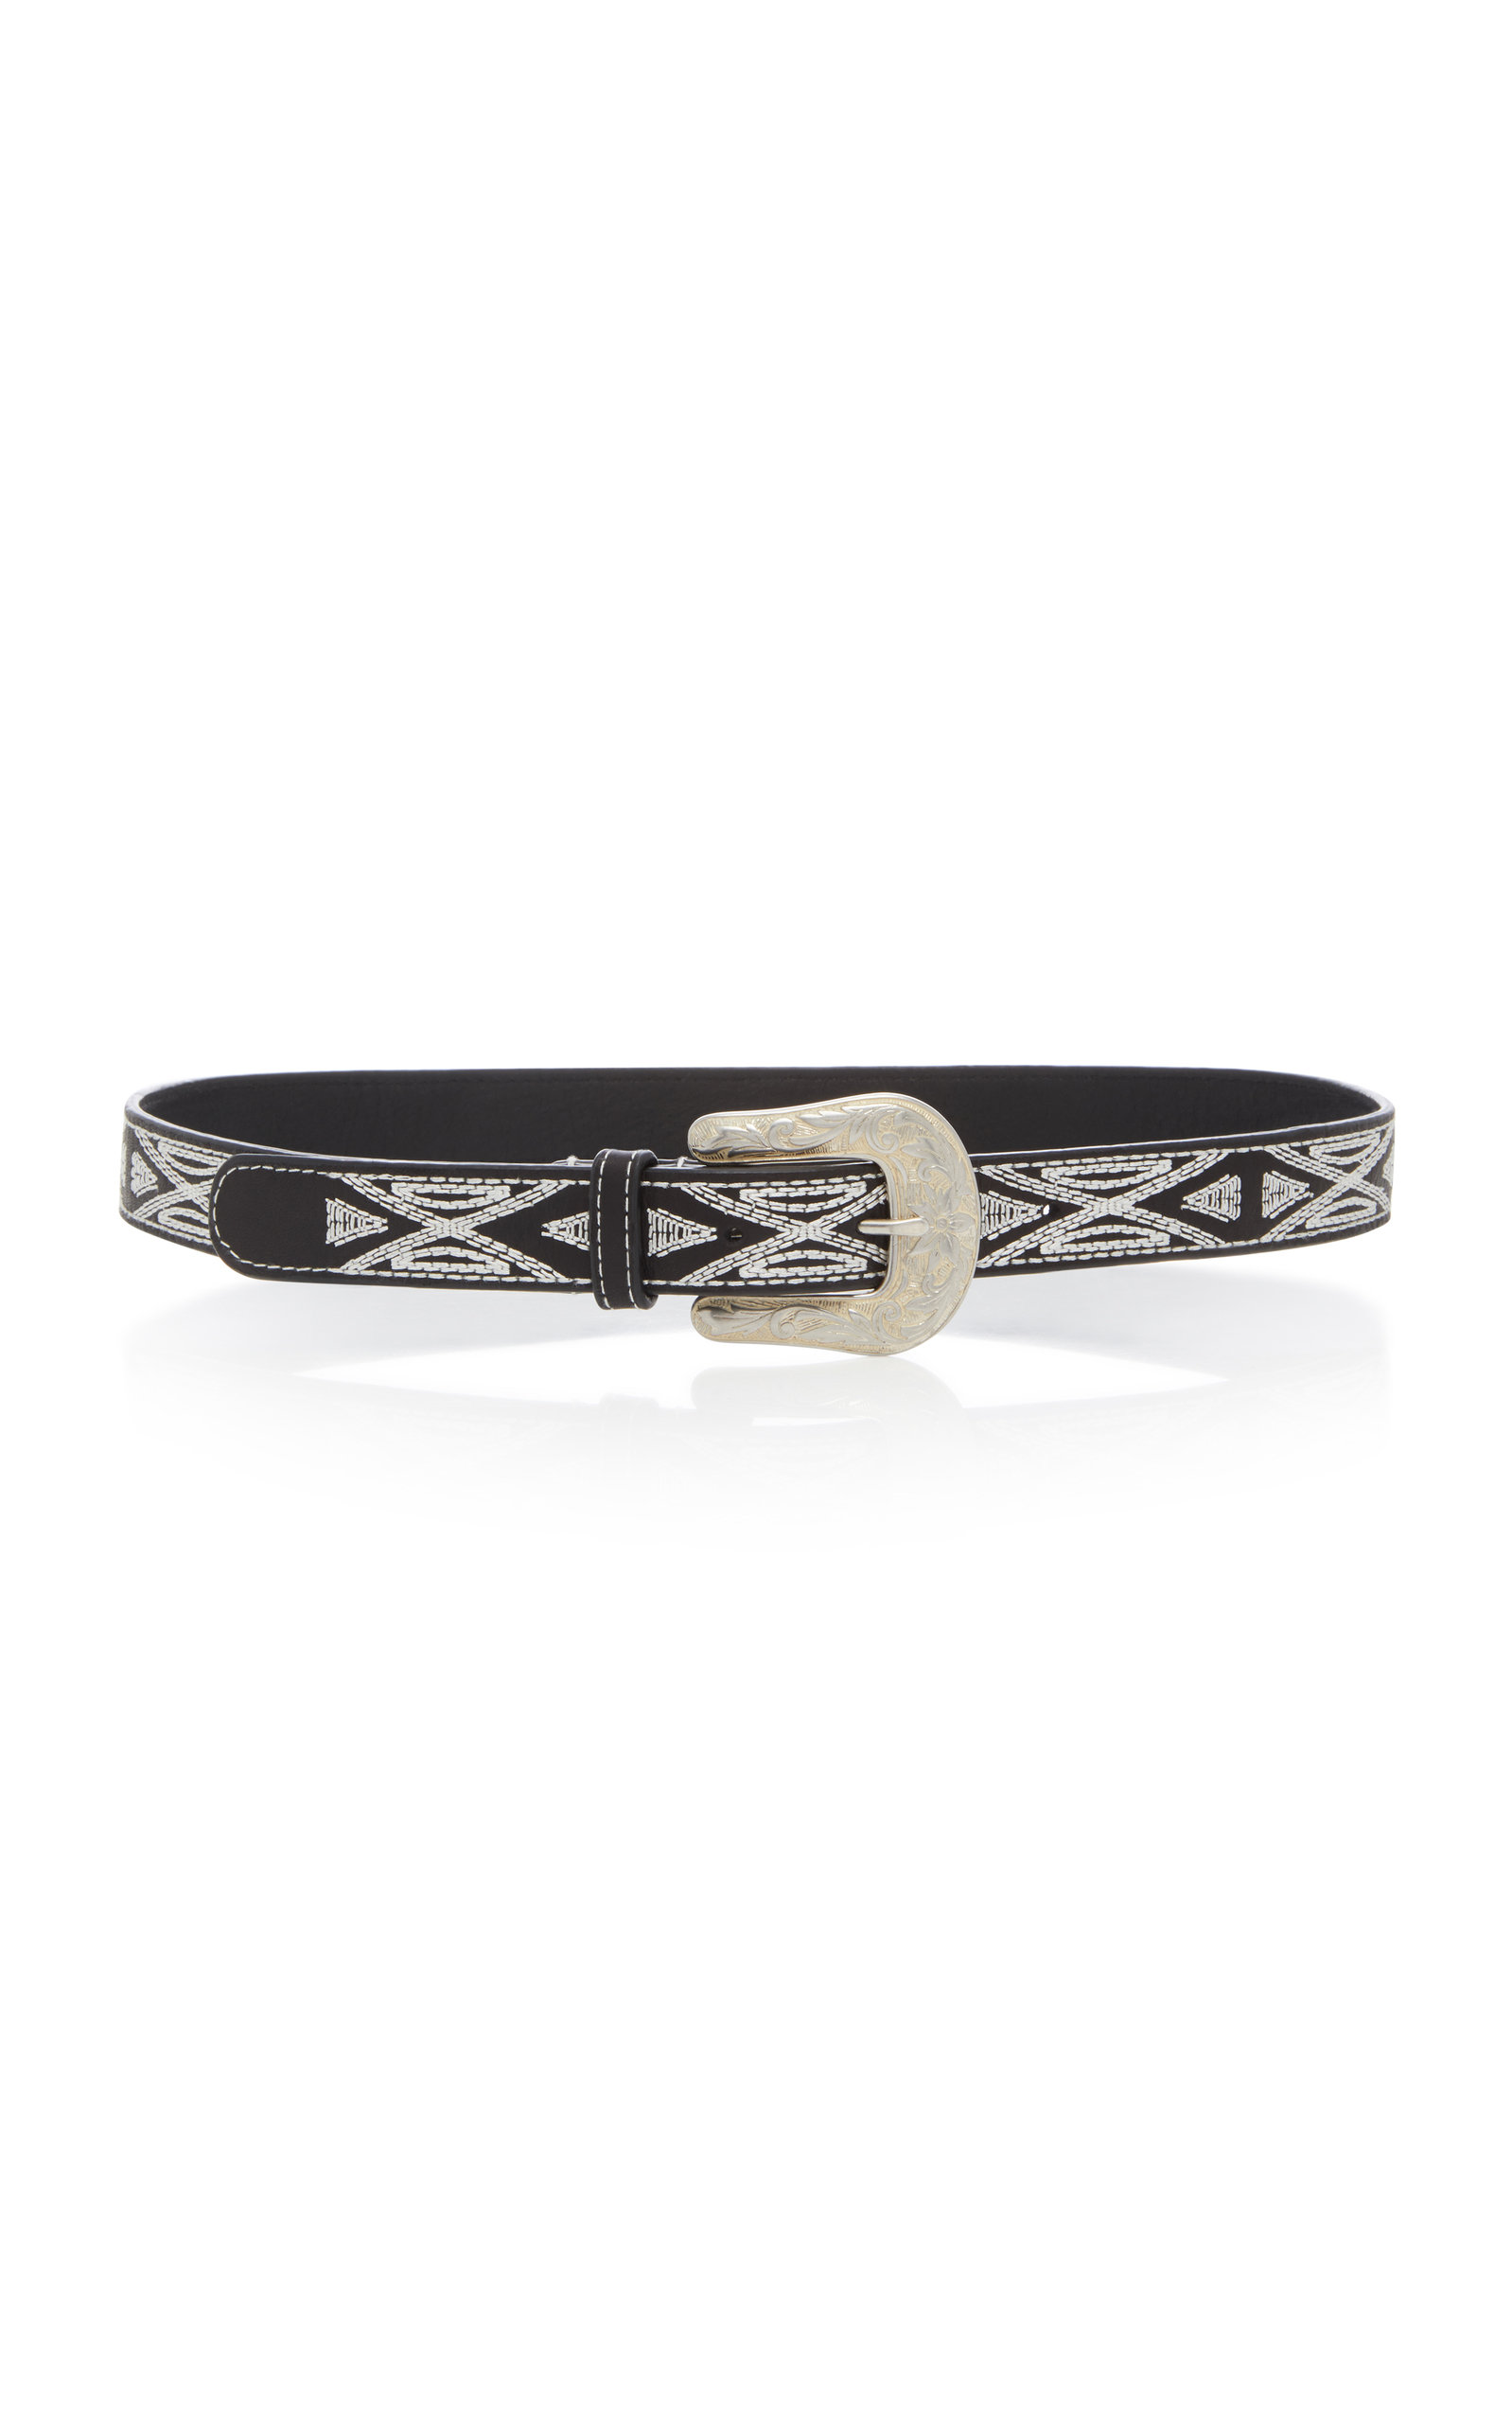 Isabel Marant TETY EMBROIDERED LEATHER BELT